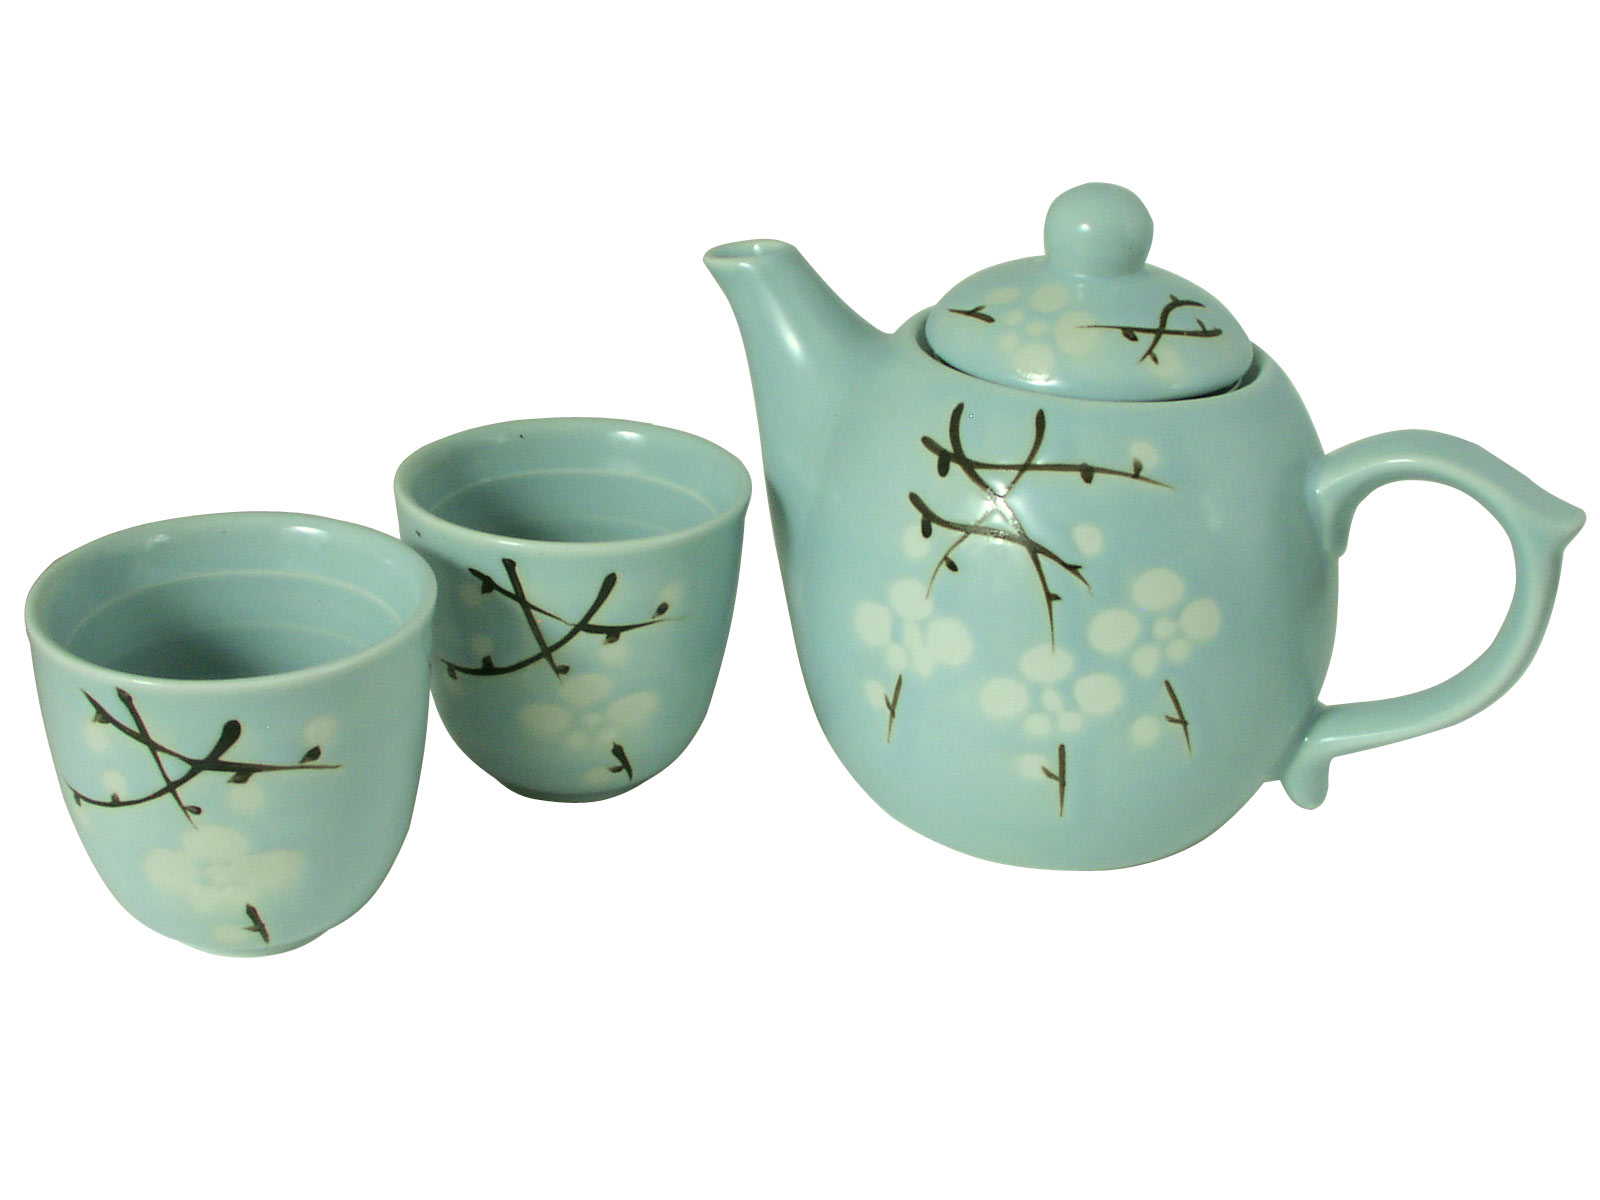 cherry blossom collection chinese teapot and cups set for two. Black Bedroom Furniture Sets. Home Design Ideas